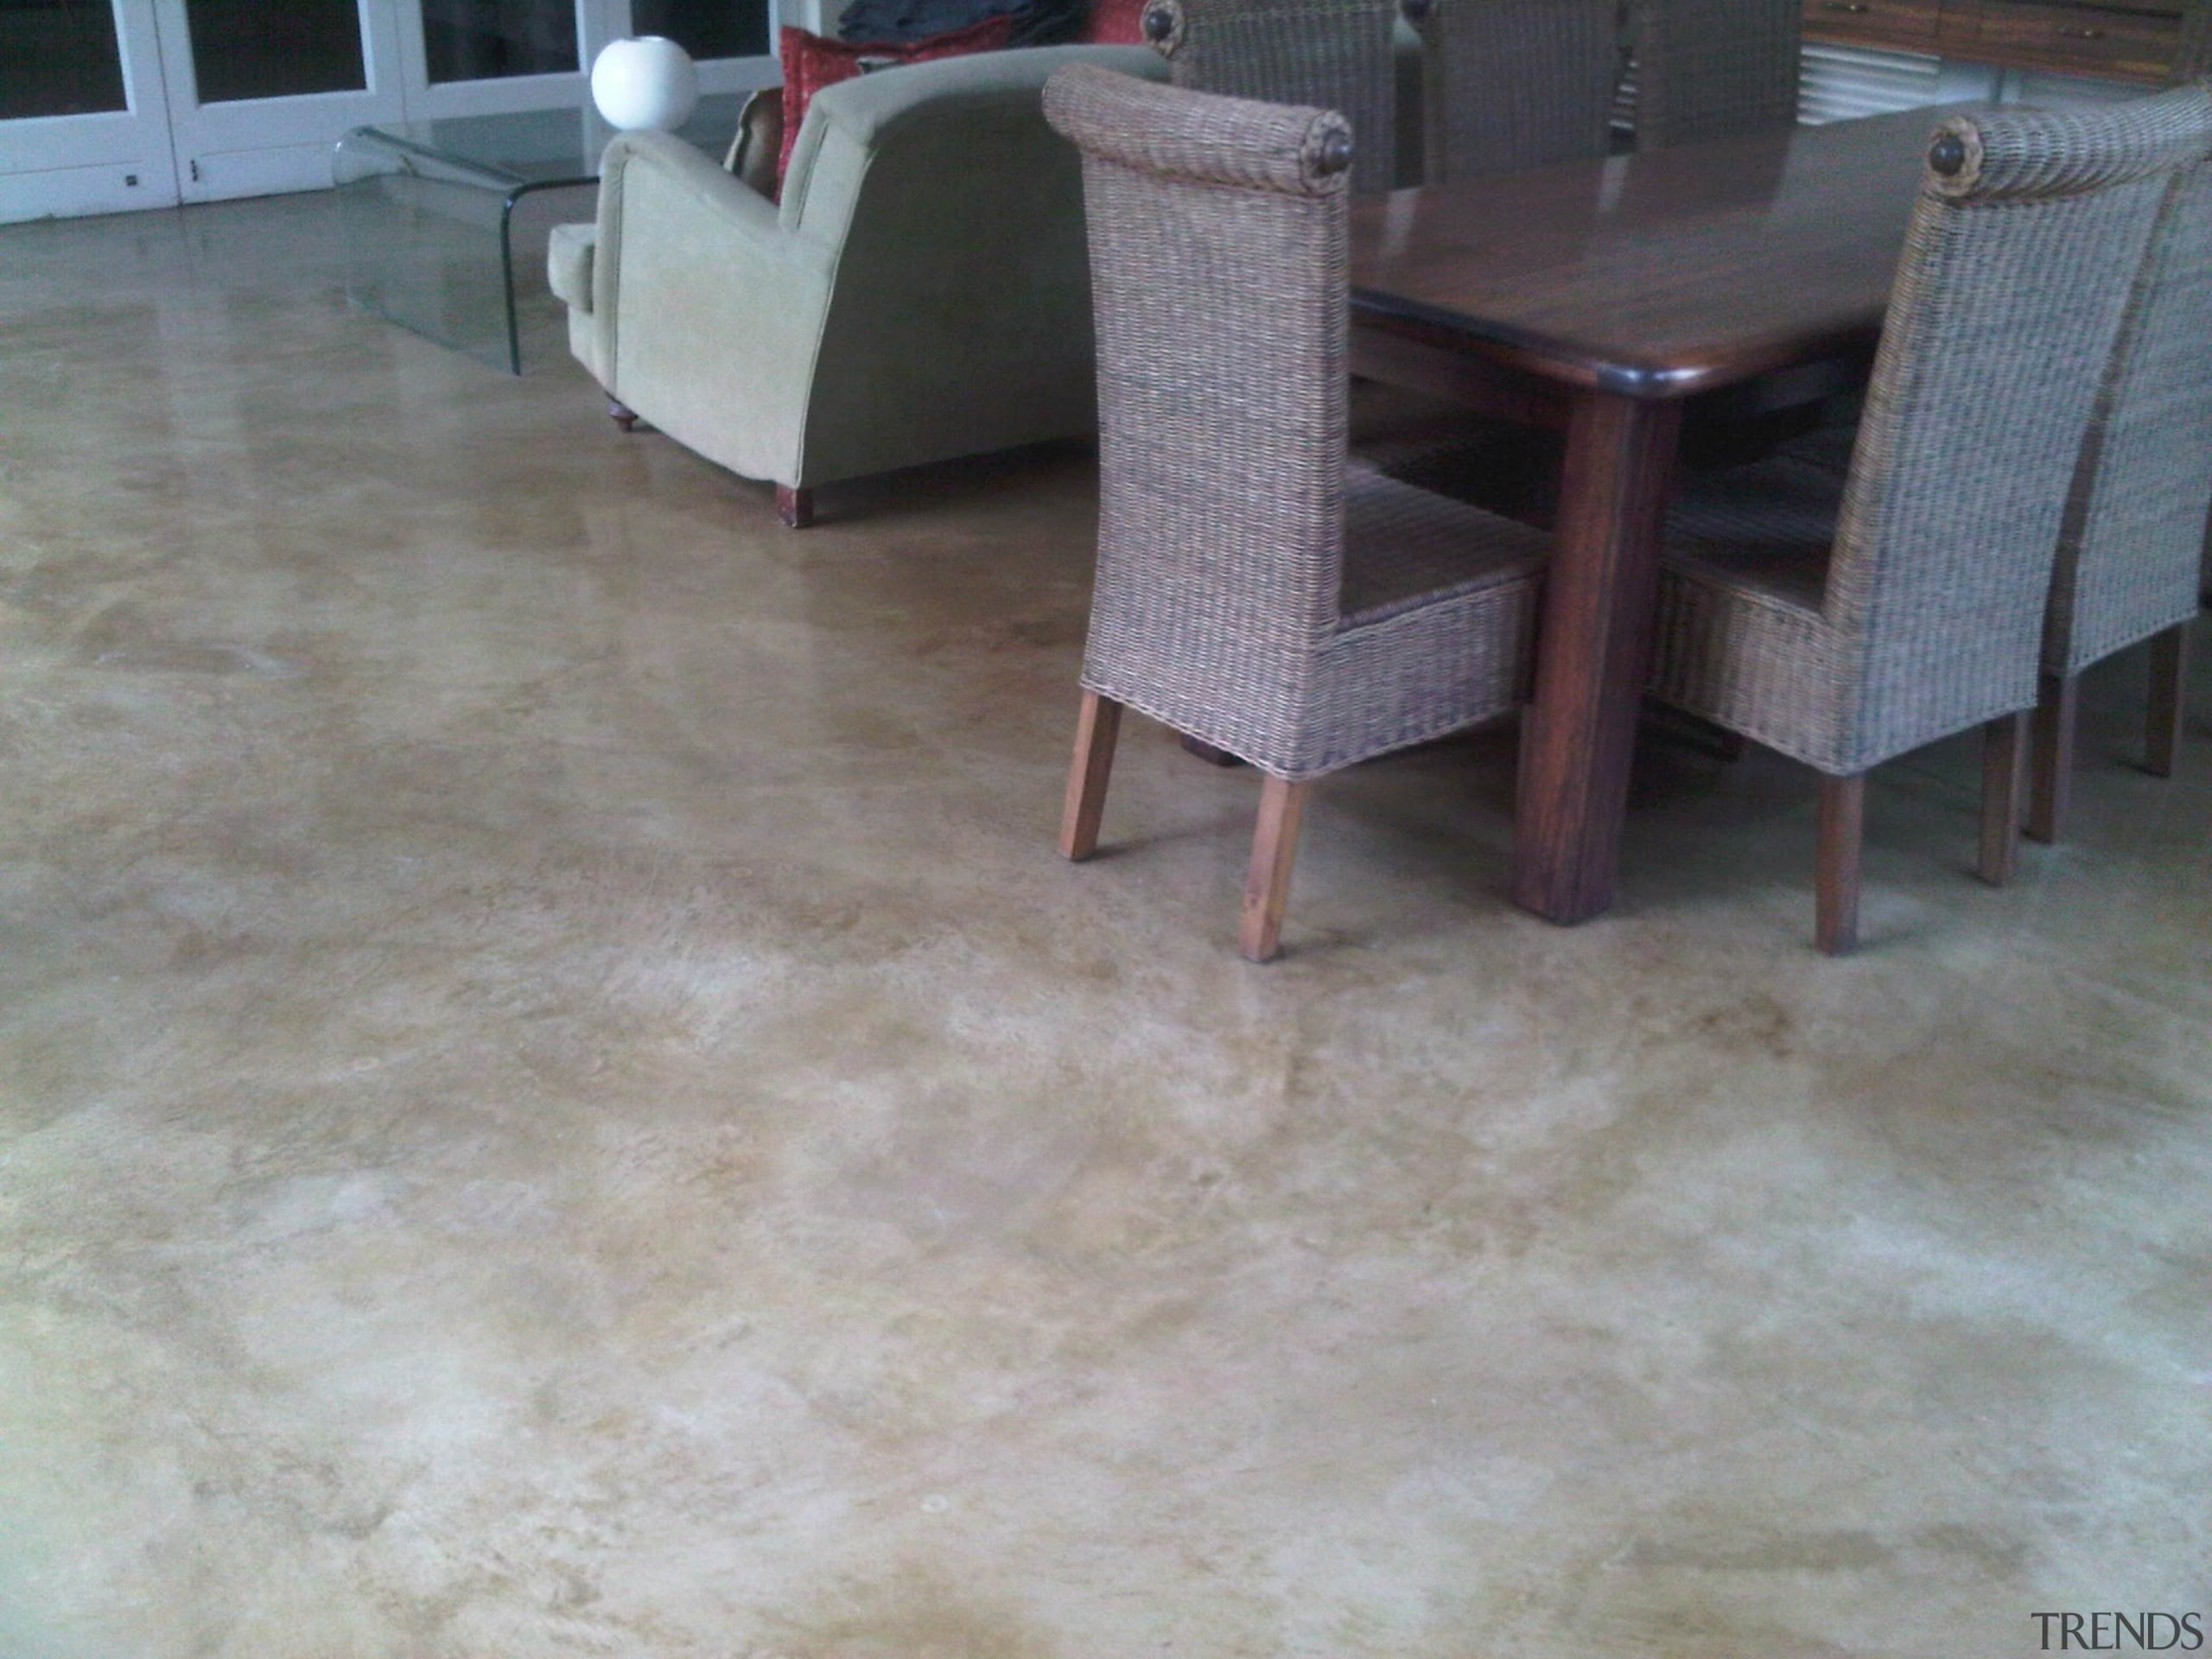 Chemical stain 9 - Chemical_stain_9 - floor | floor, flooring, hardwood, laminate flooring, table, tile, wood, wood flooring, gray